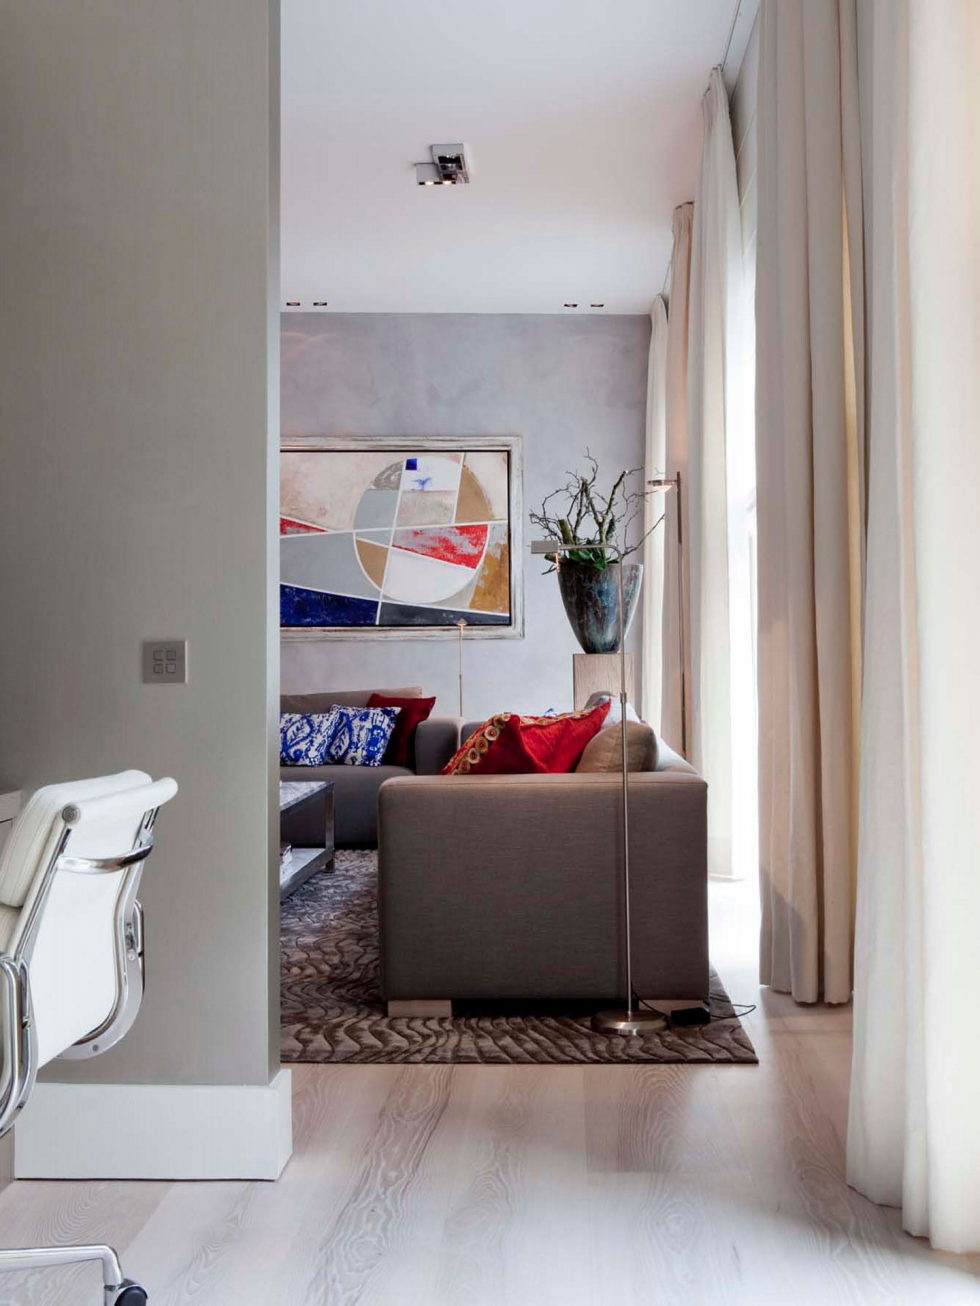 The Glass House In Amsterdam From Essentials Interieur and Roy De Scheemaker 7